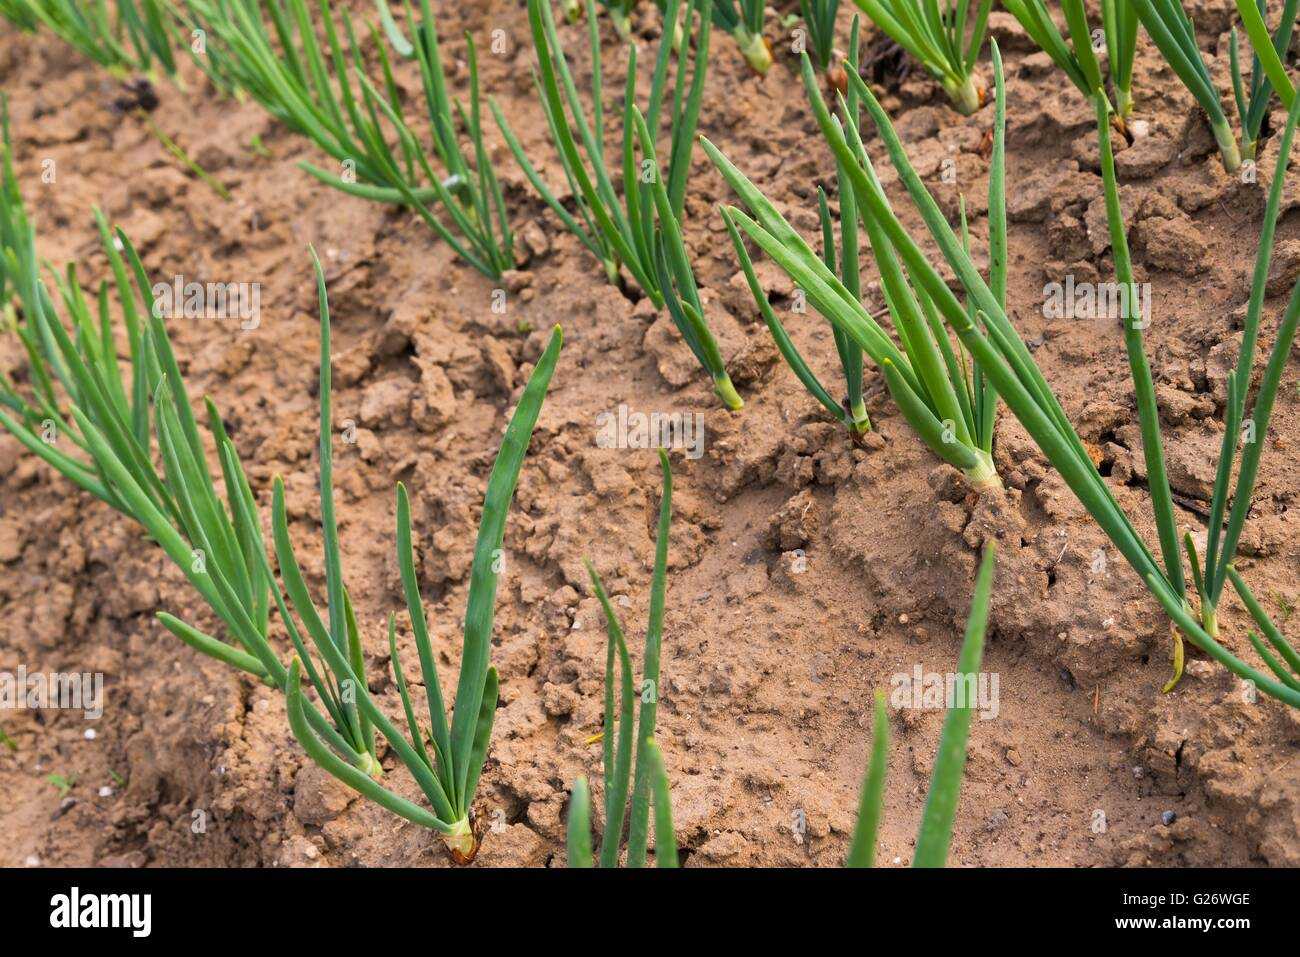 Young Sprouts Green Onion Stock Photos & Young Sprouts Green Onion ...